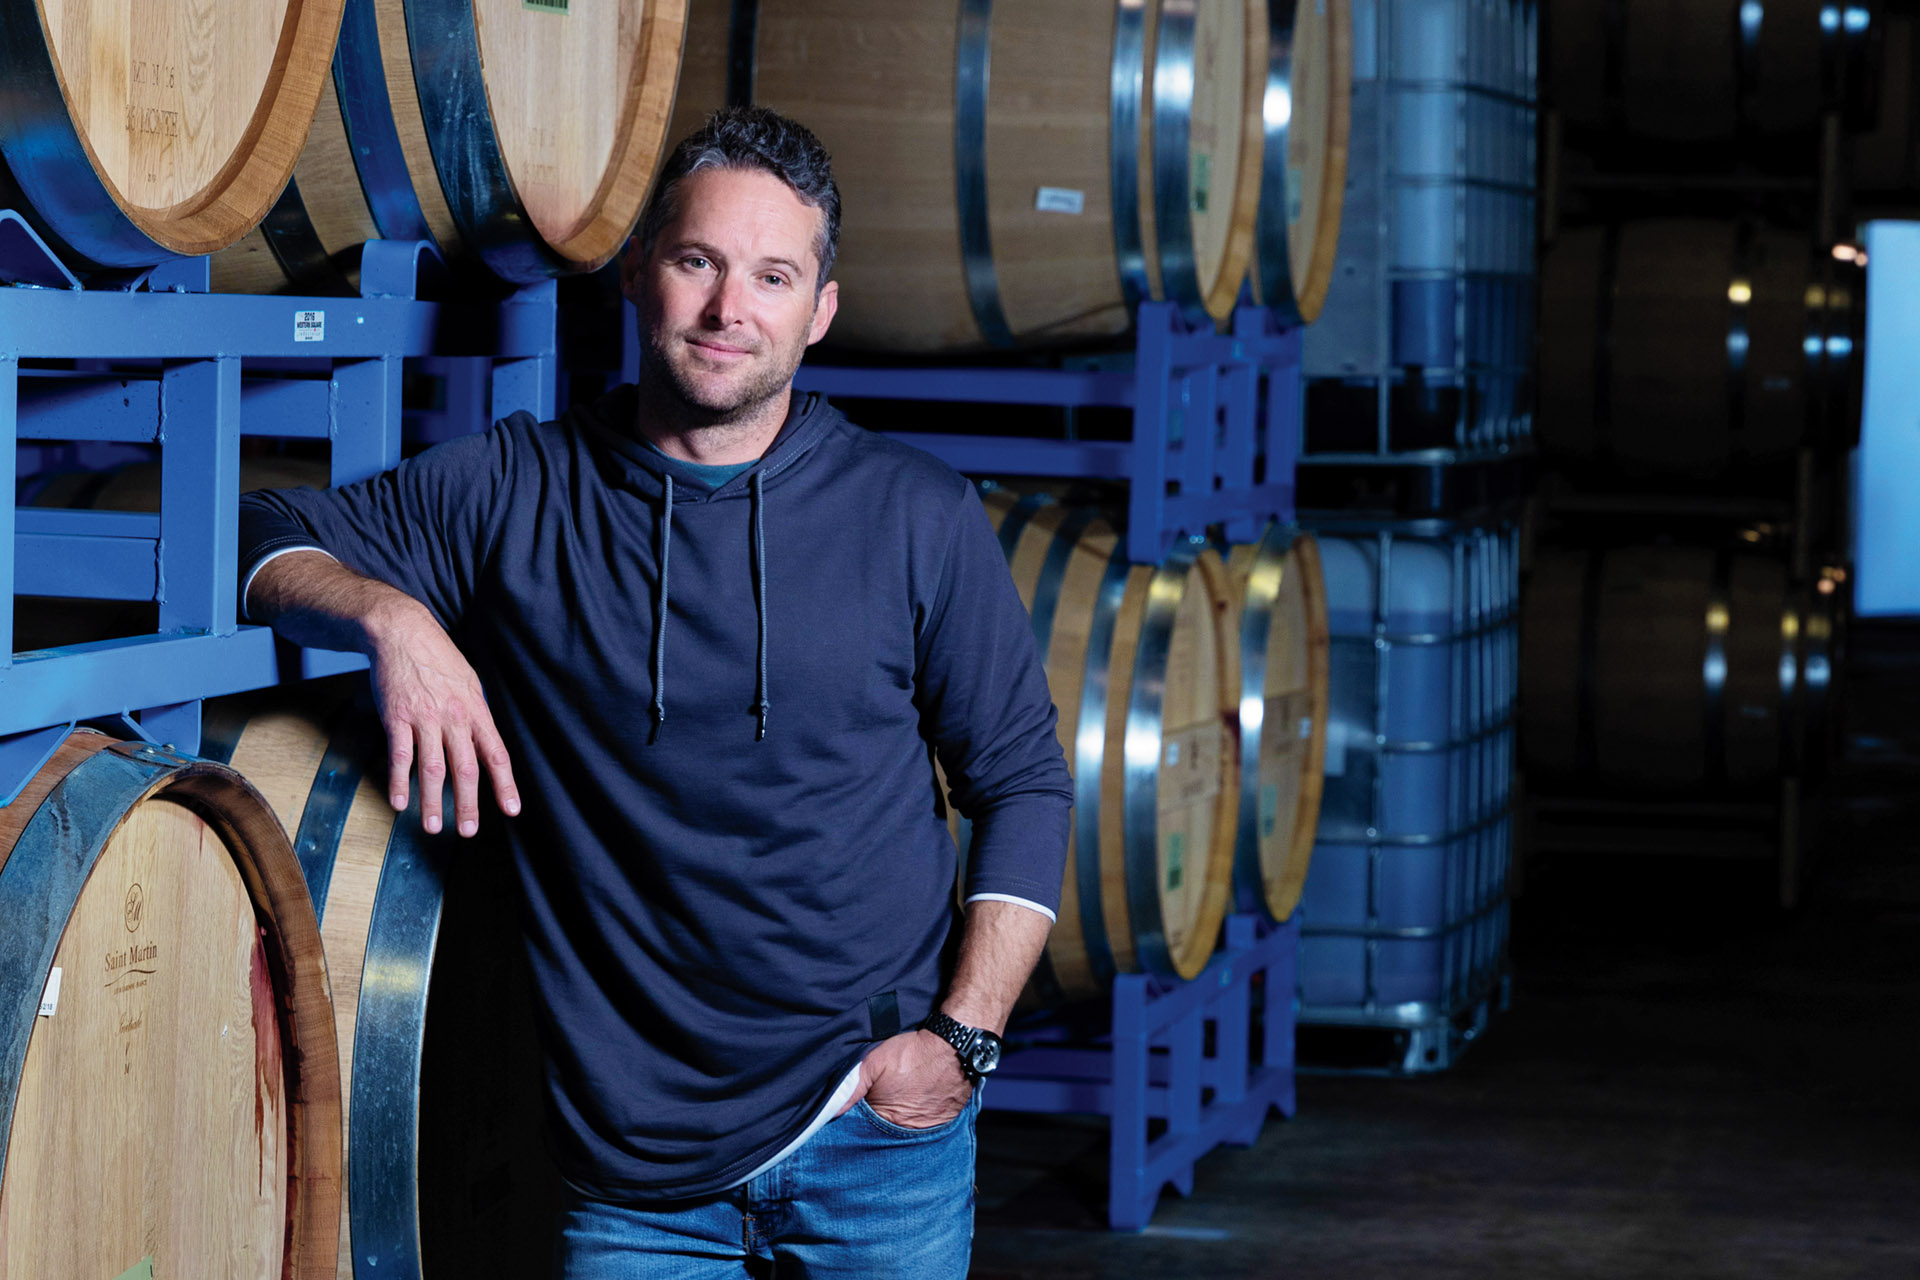 Joe Shebl, director of winemaking and general manager of Renwood Winery